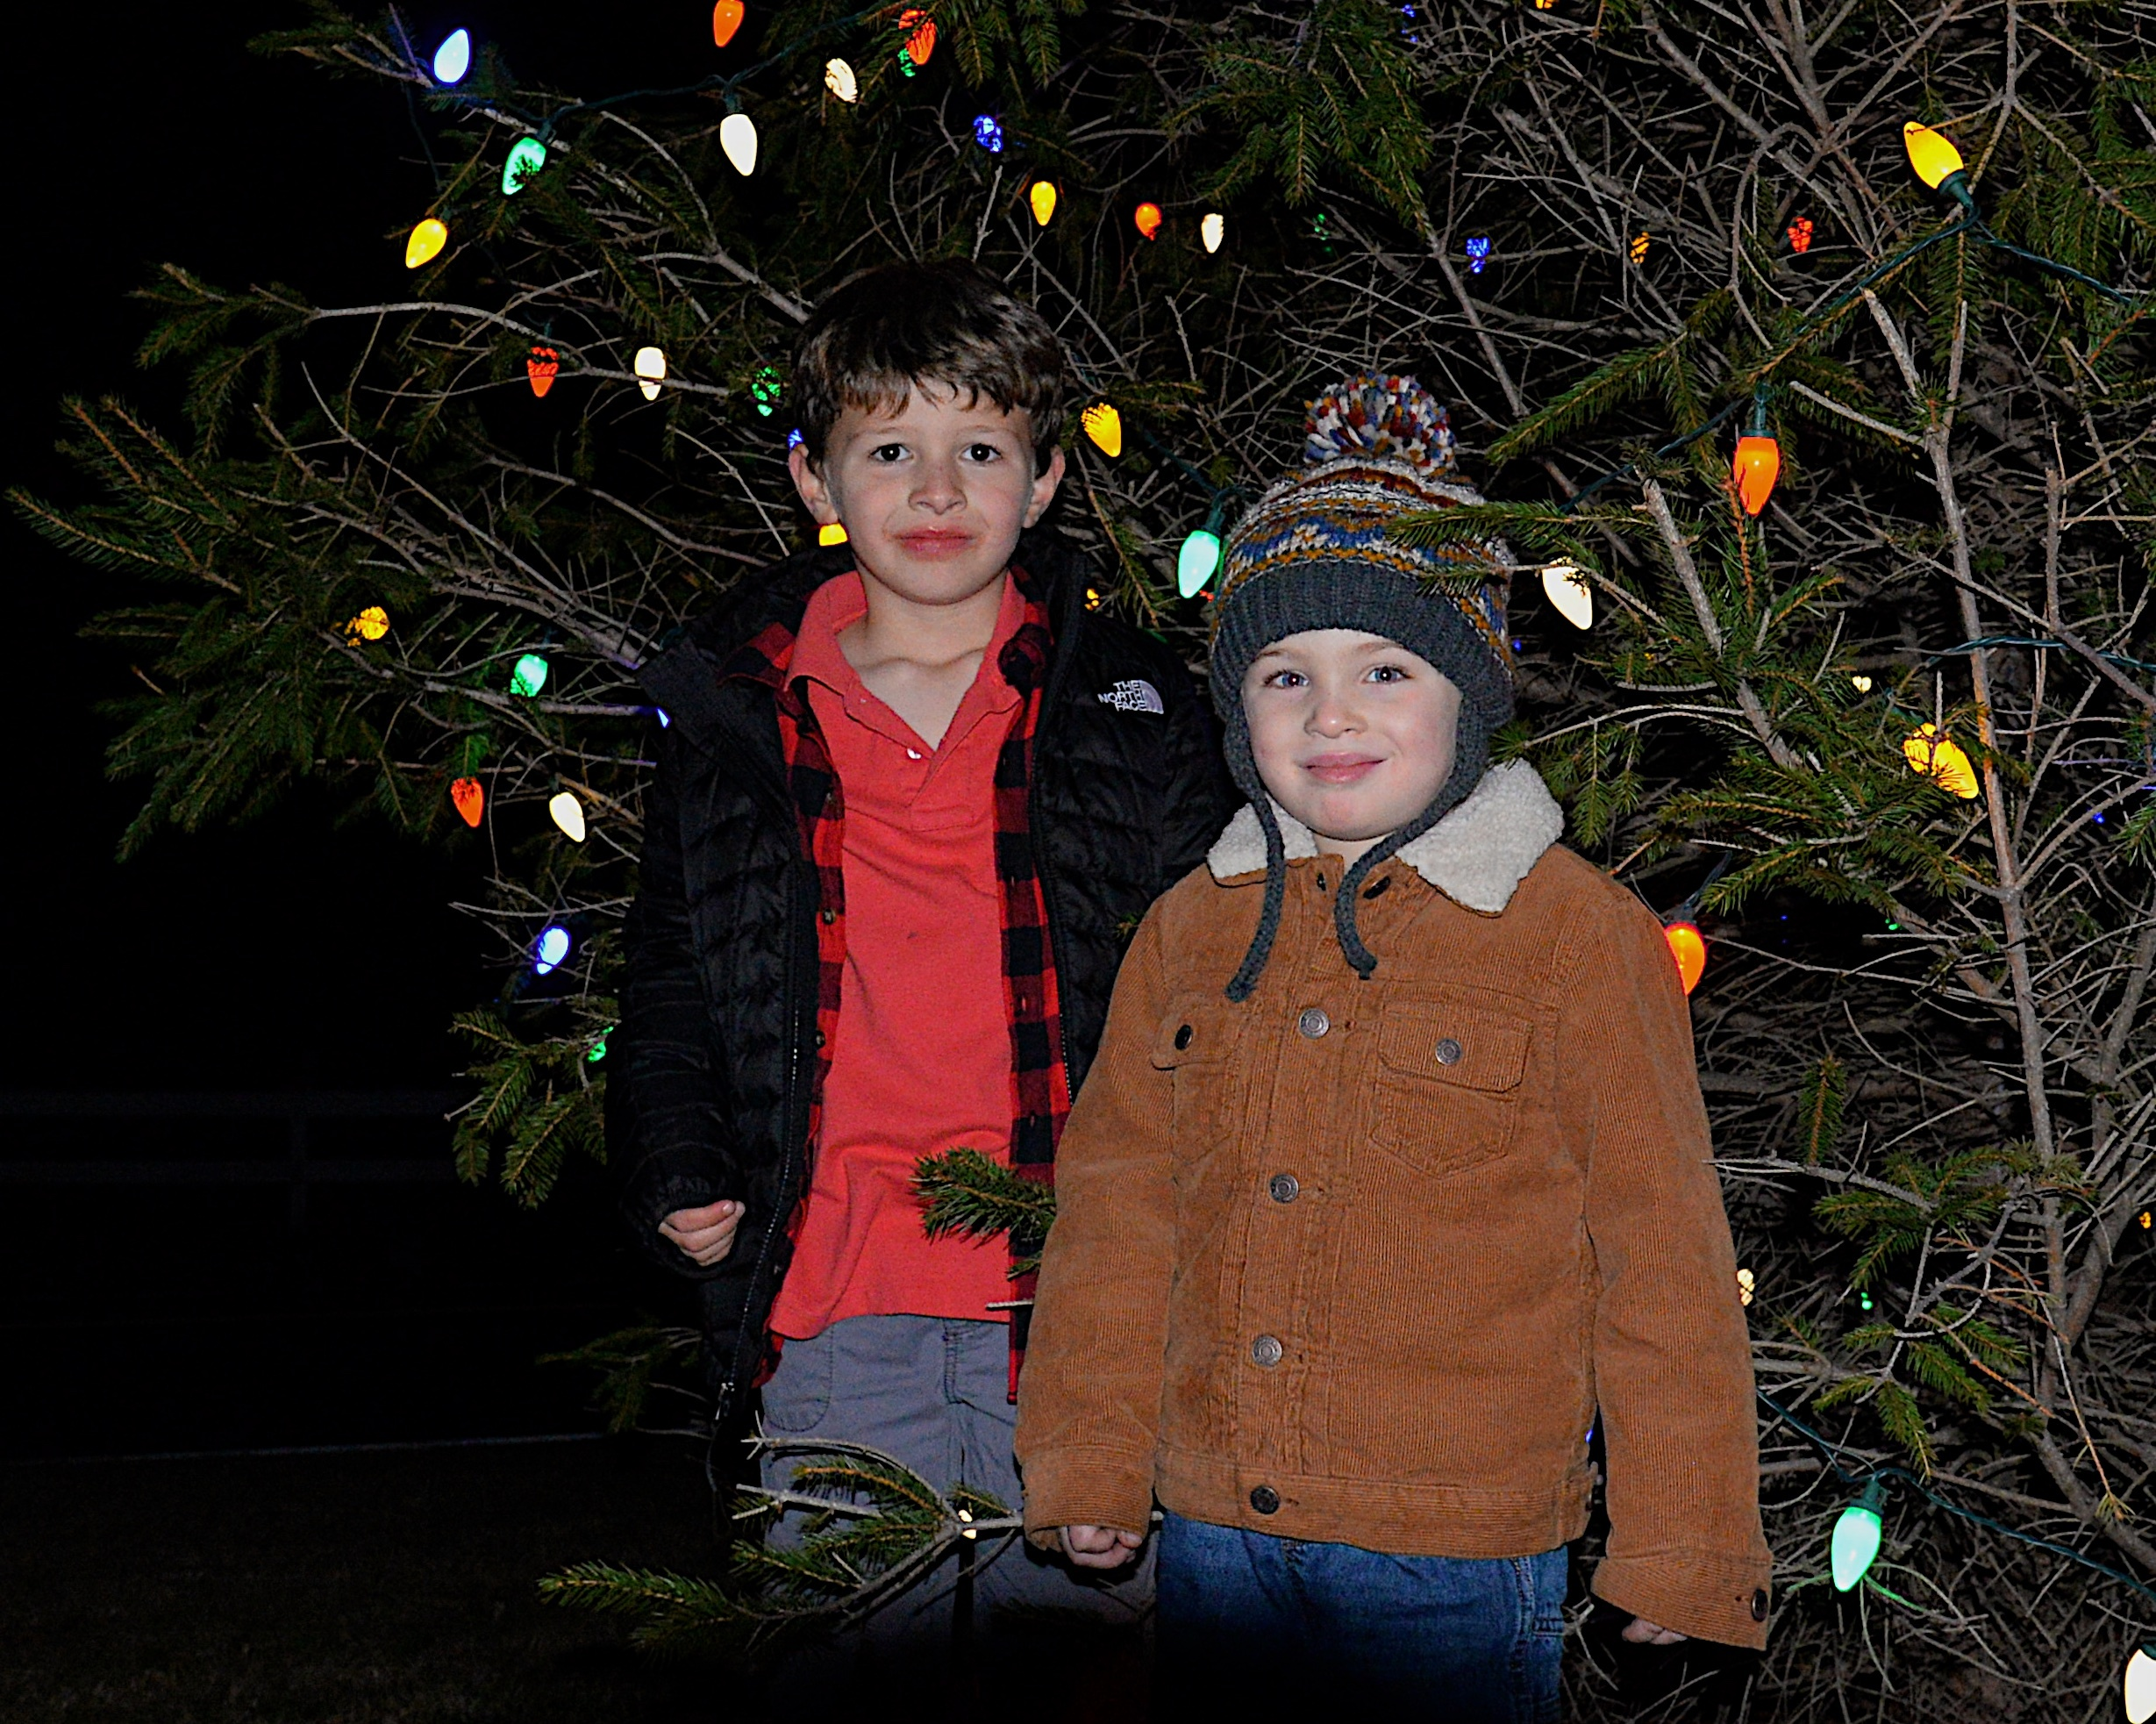 Lucca Trentacoste and Landon Sireci, right, were among those attending the Lights Of Love holiday gathering at Ashawagh Hall on Sunday. KYRIL BROMLEY